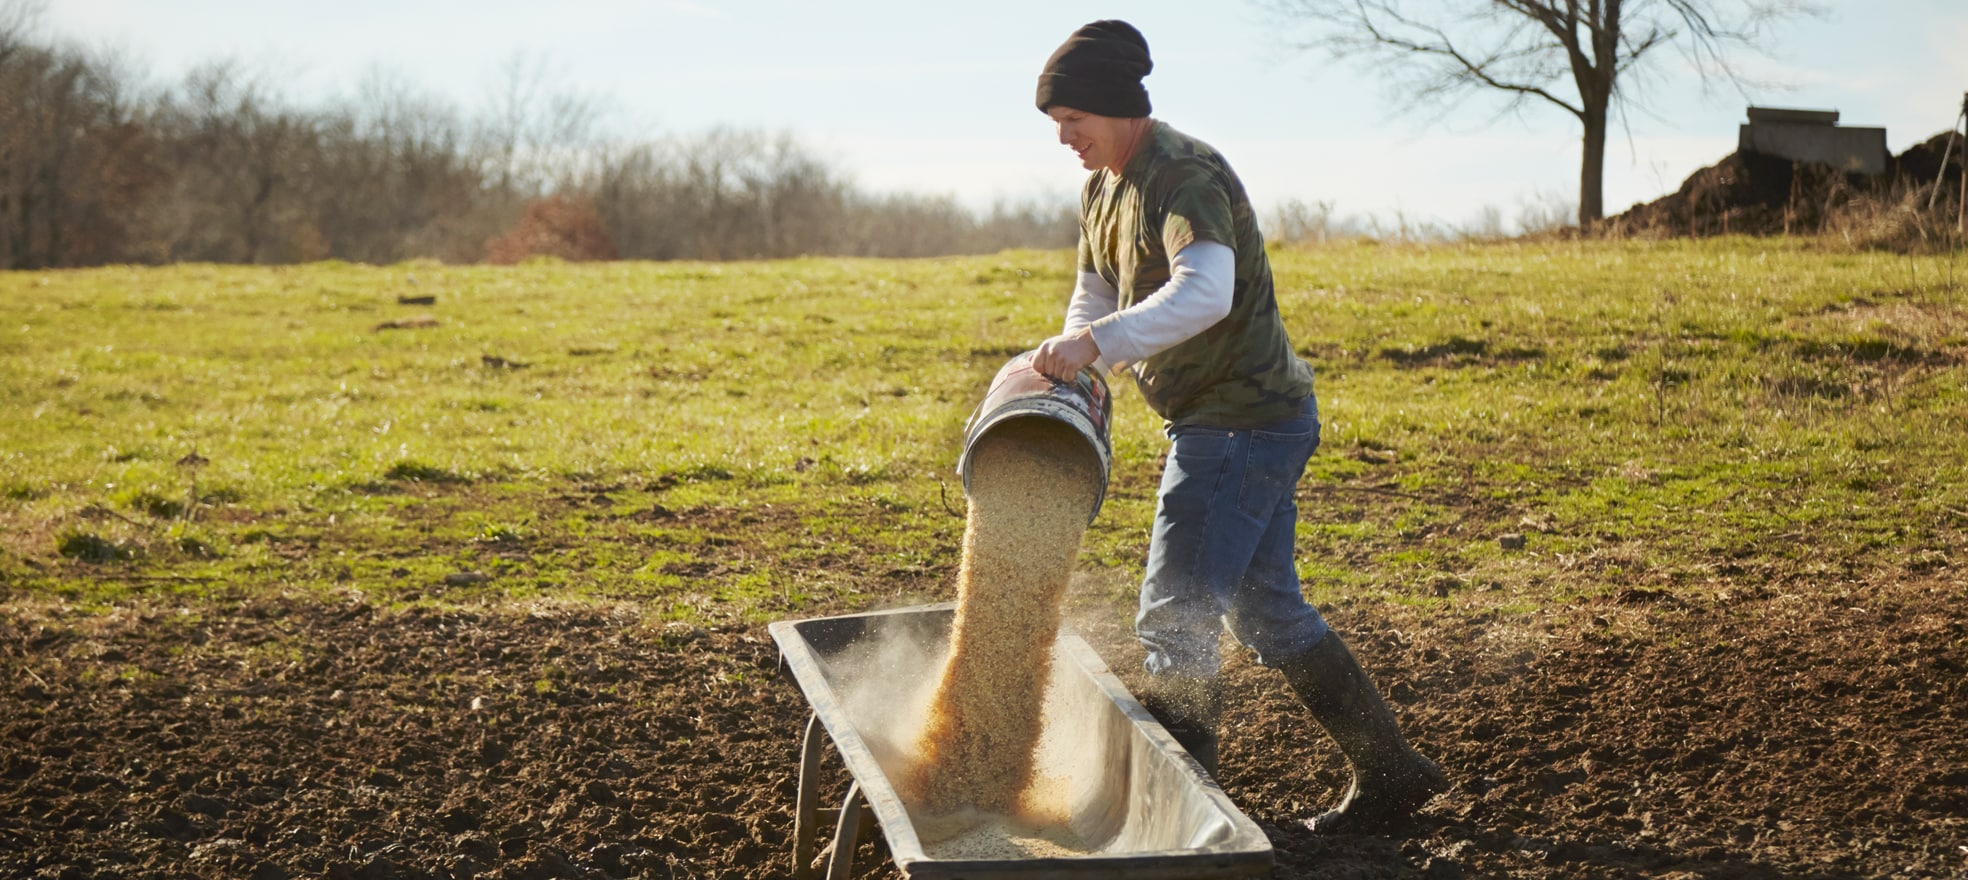 Man with a hat working on a farm.